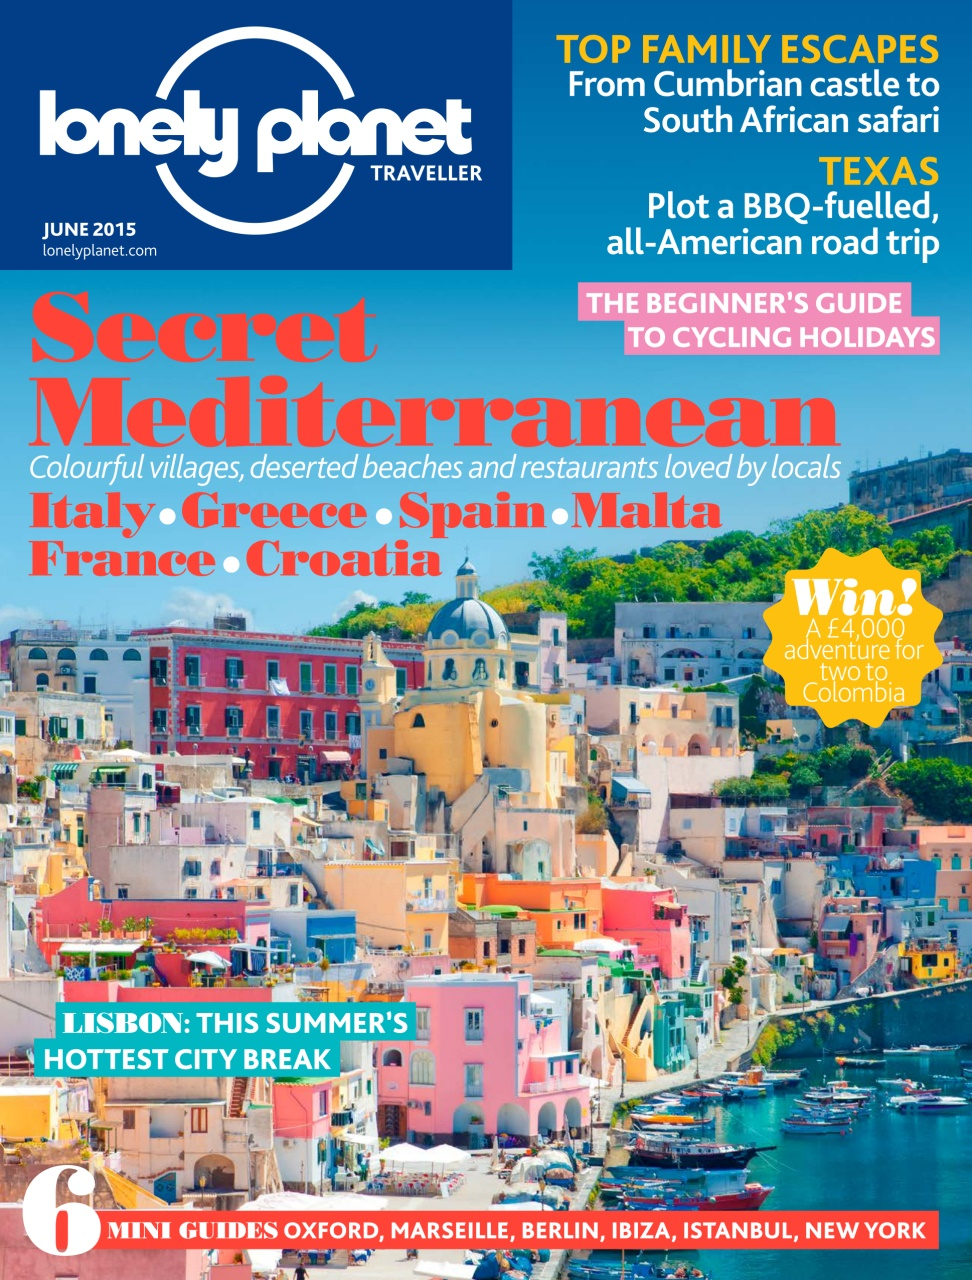 Lonely Planet Traveller - June 2015 download dree